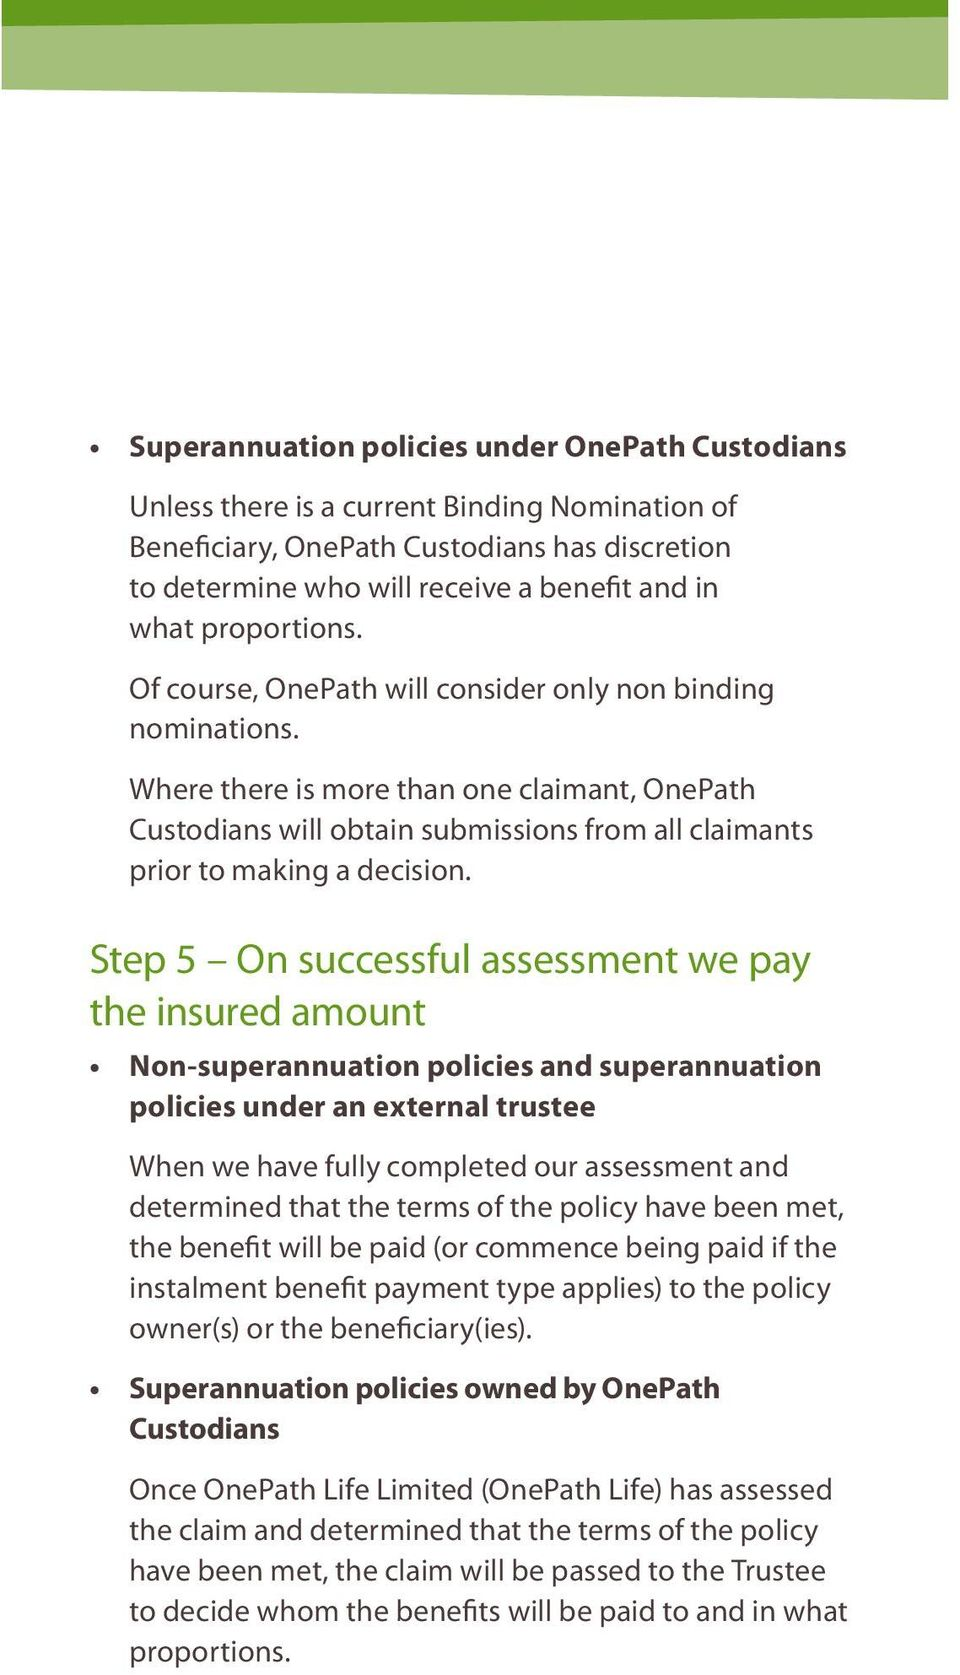 Where there is more than one claimant, OnePath Custodians will obtain submissions from all claimants prior to making a decision.